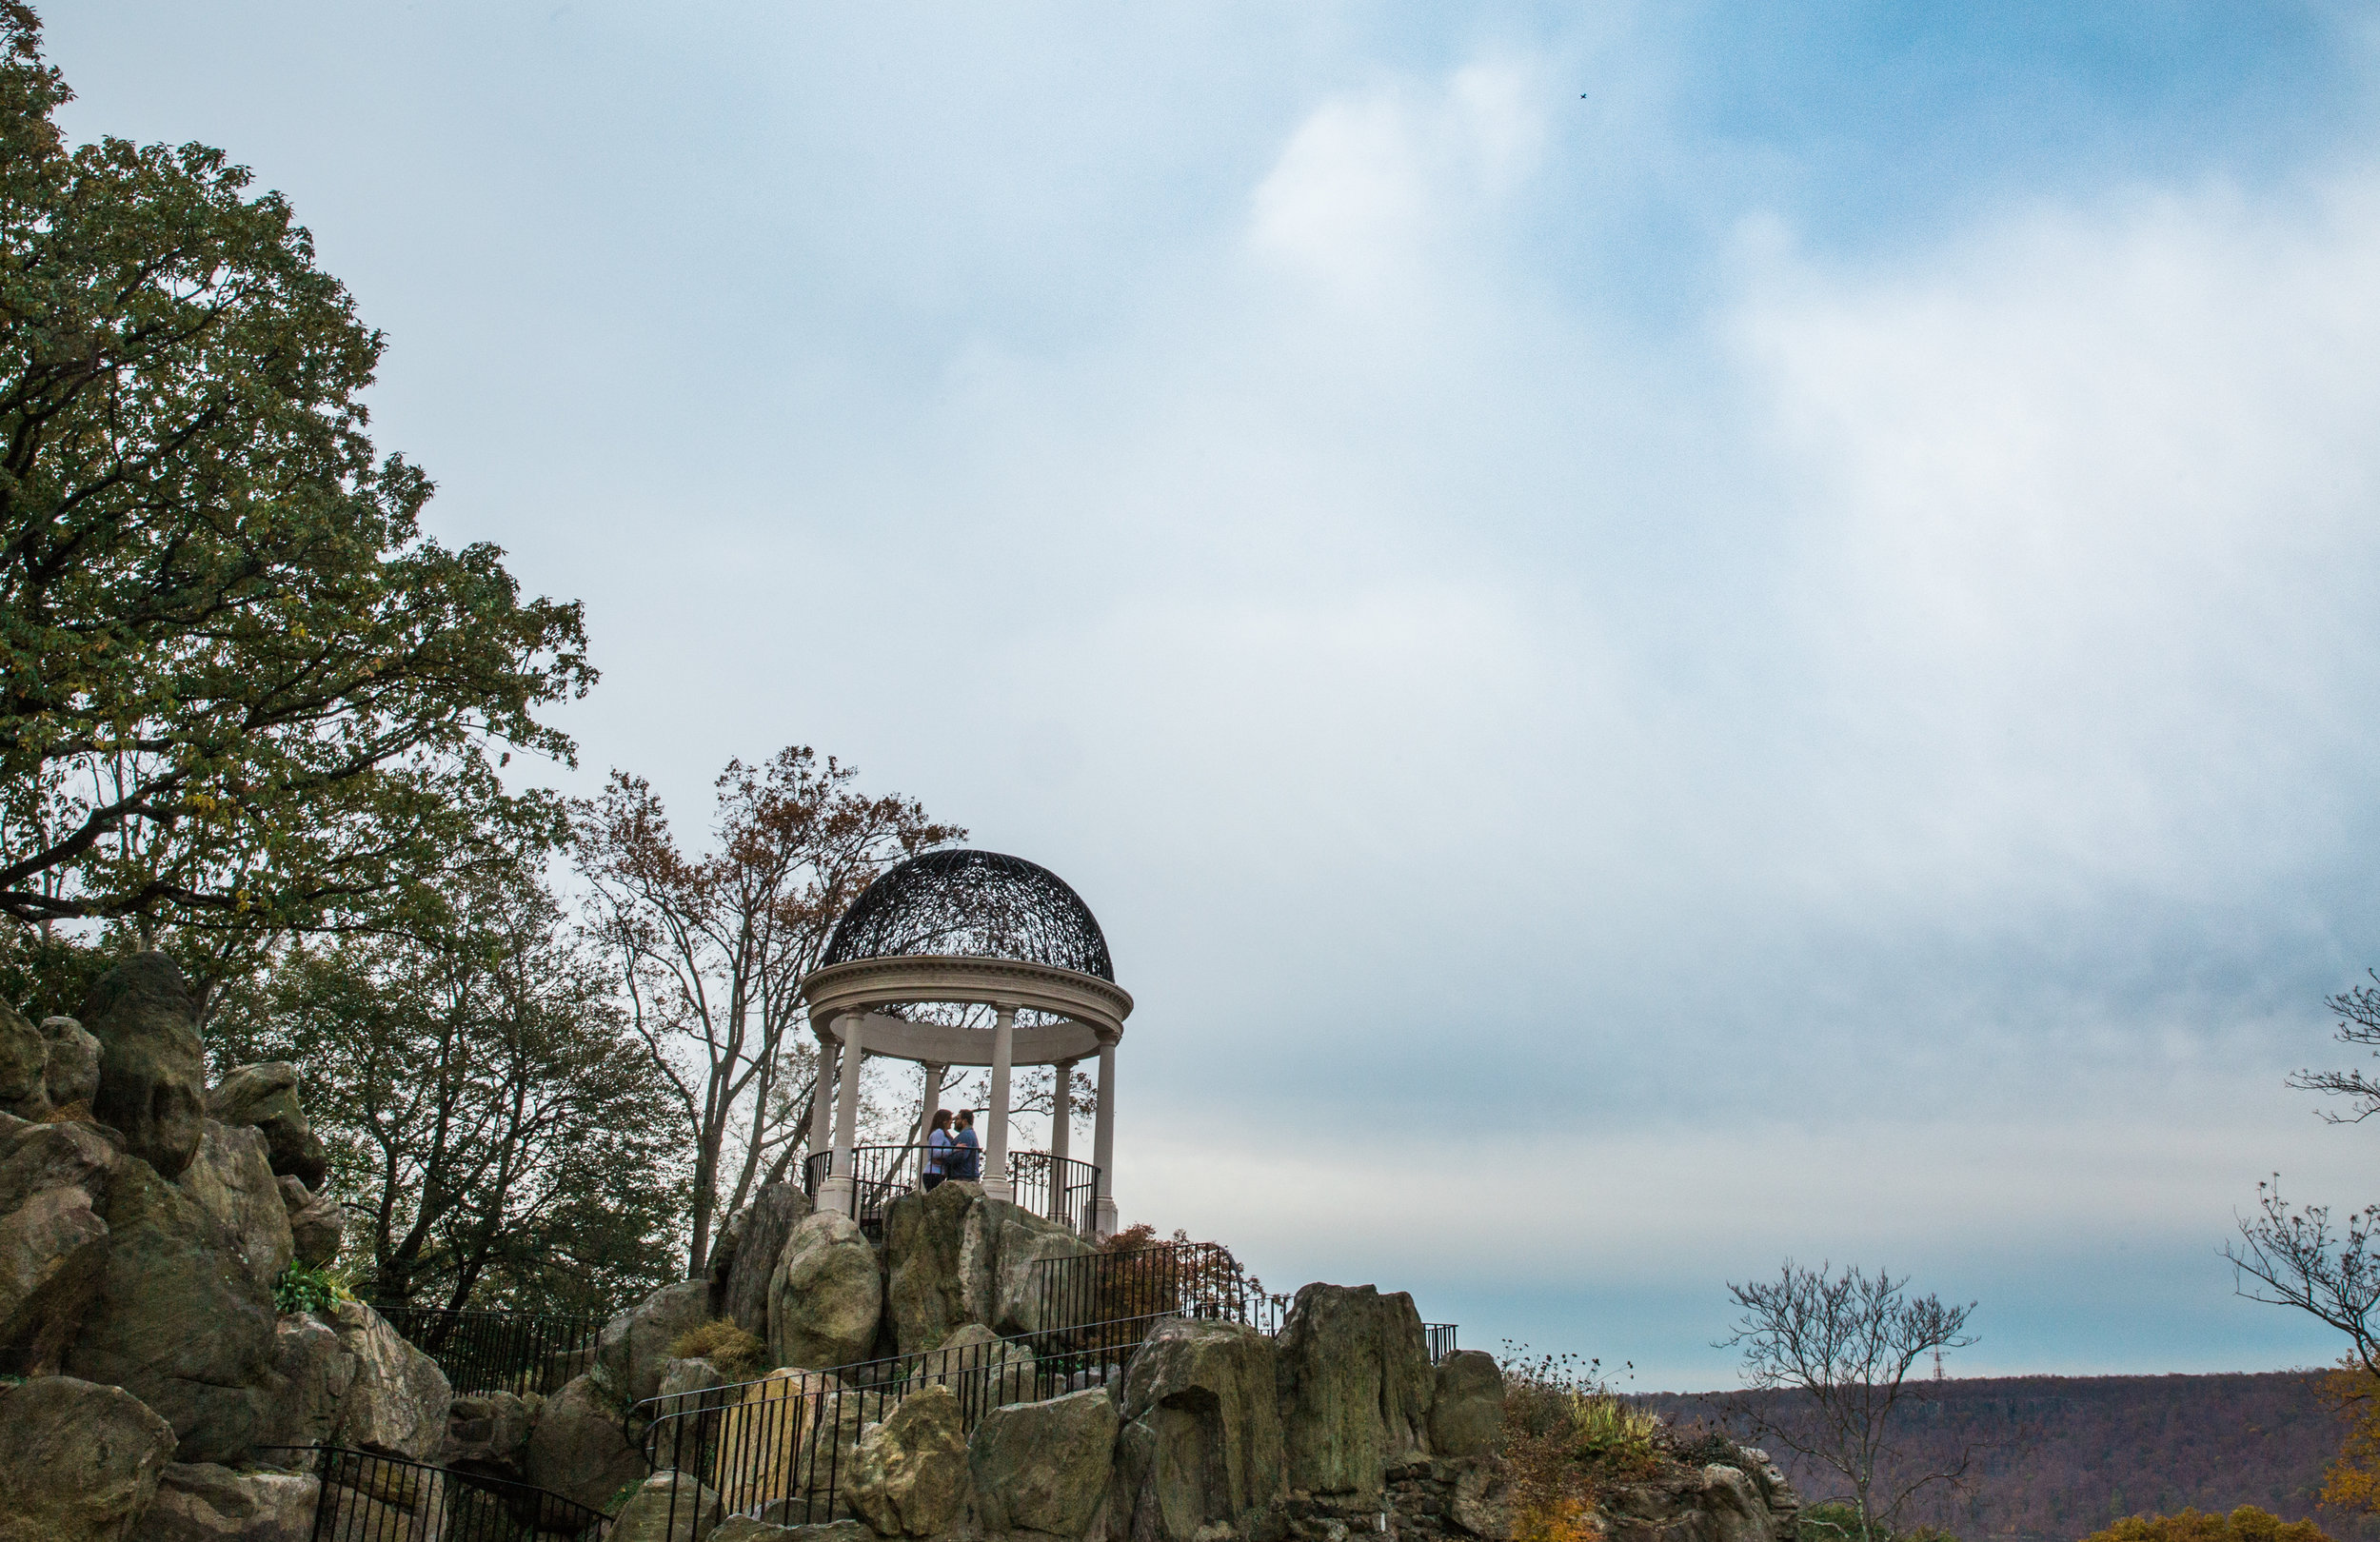 Engagement Session Photography at Untermyer Gardens in New York by Megapixels Media